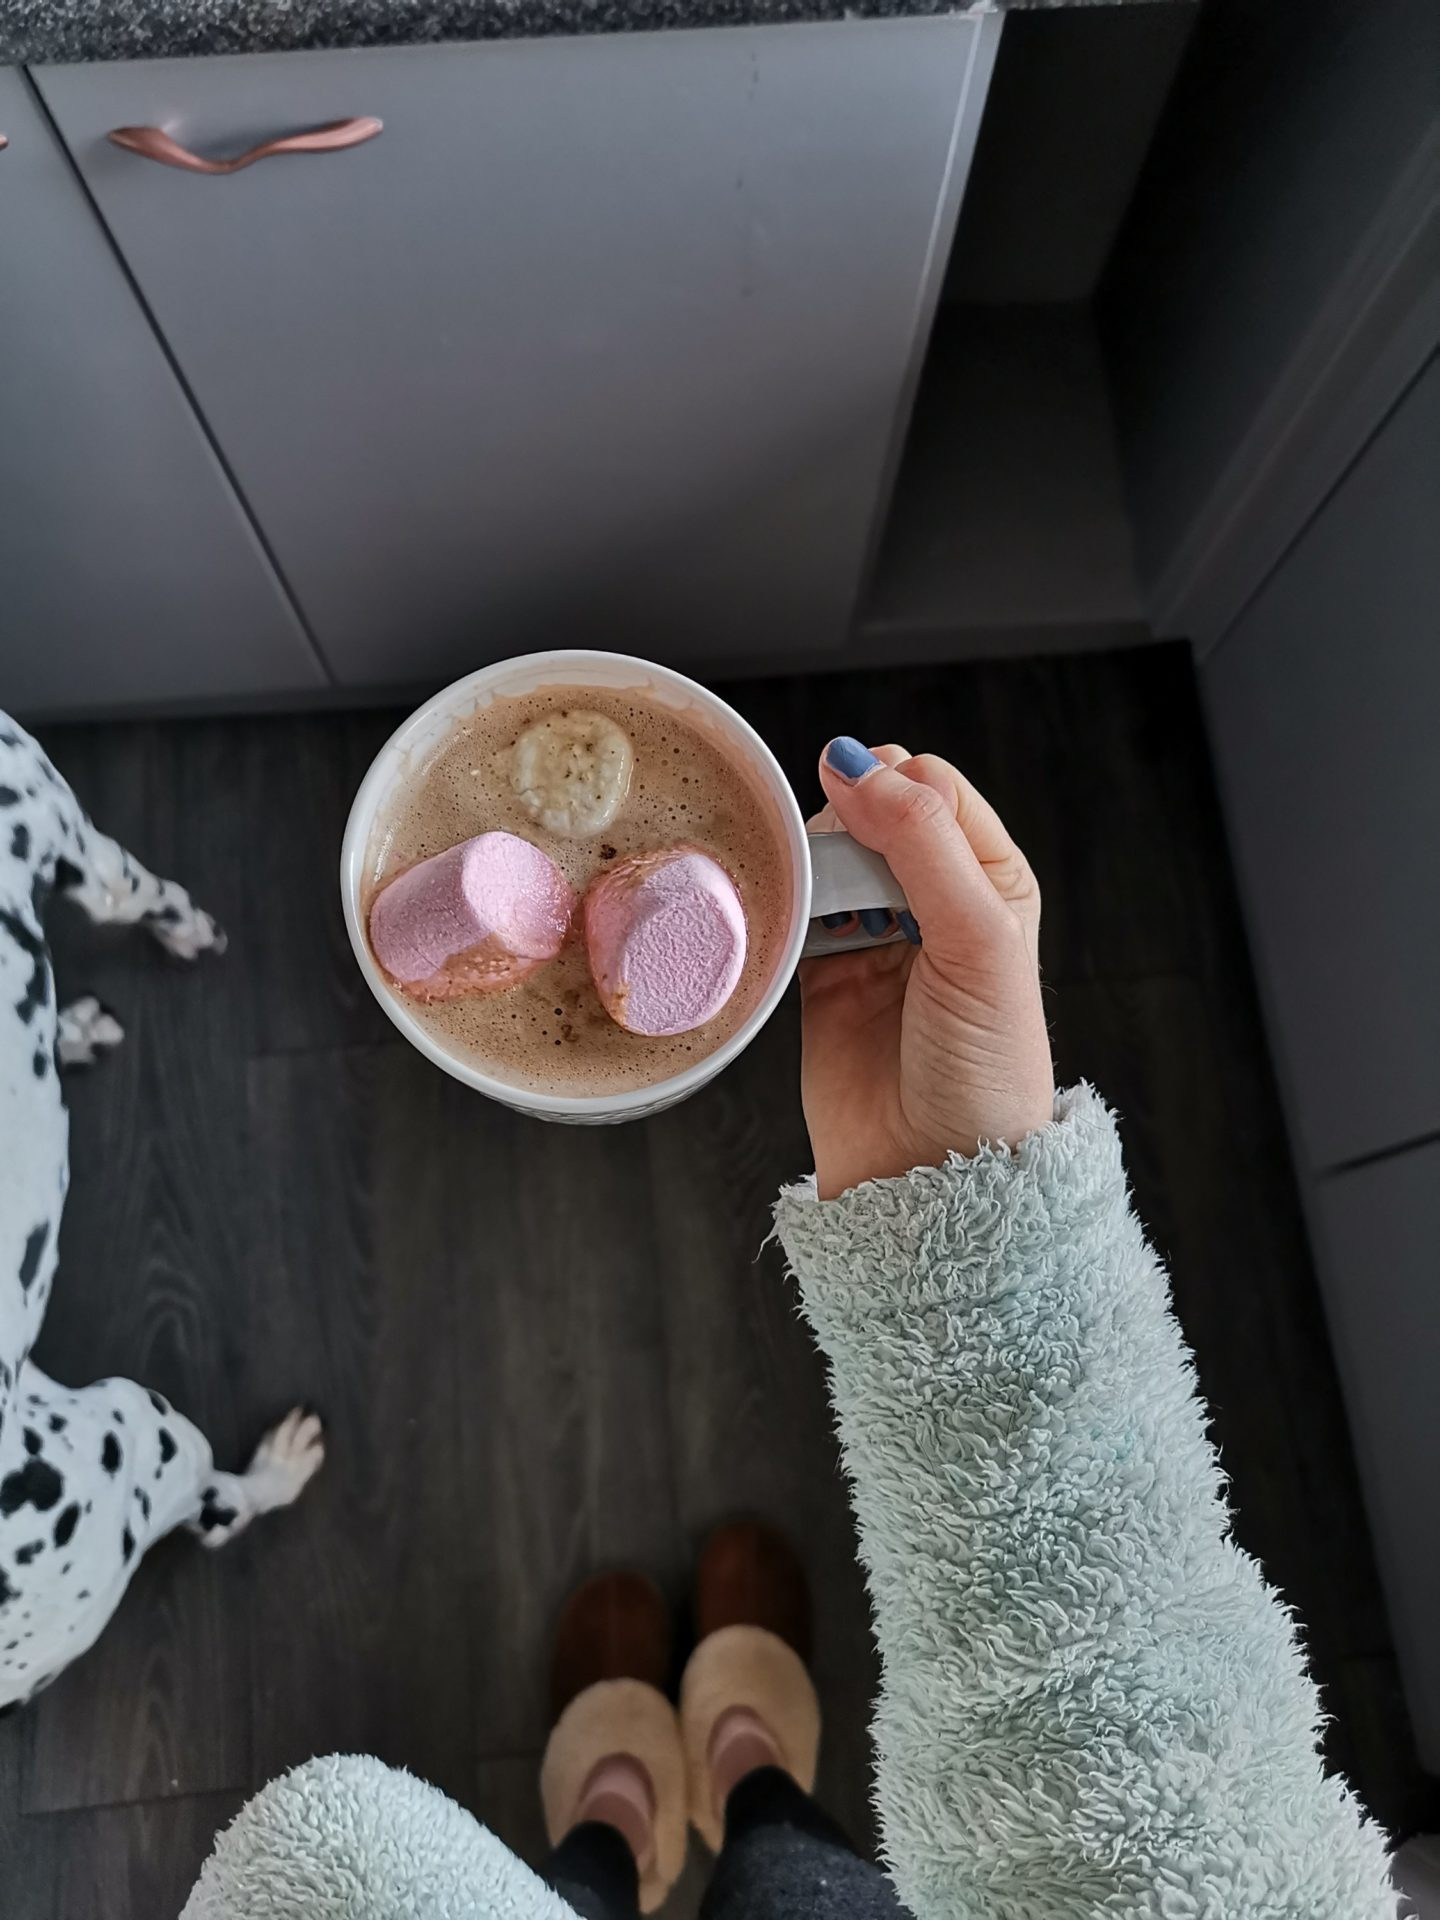 Kitchen Renovation under £250 - After Photo - Grey flooring - Coffee with Marshmallows